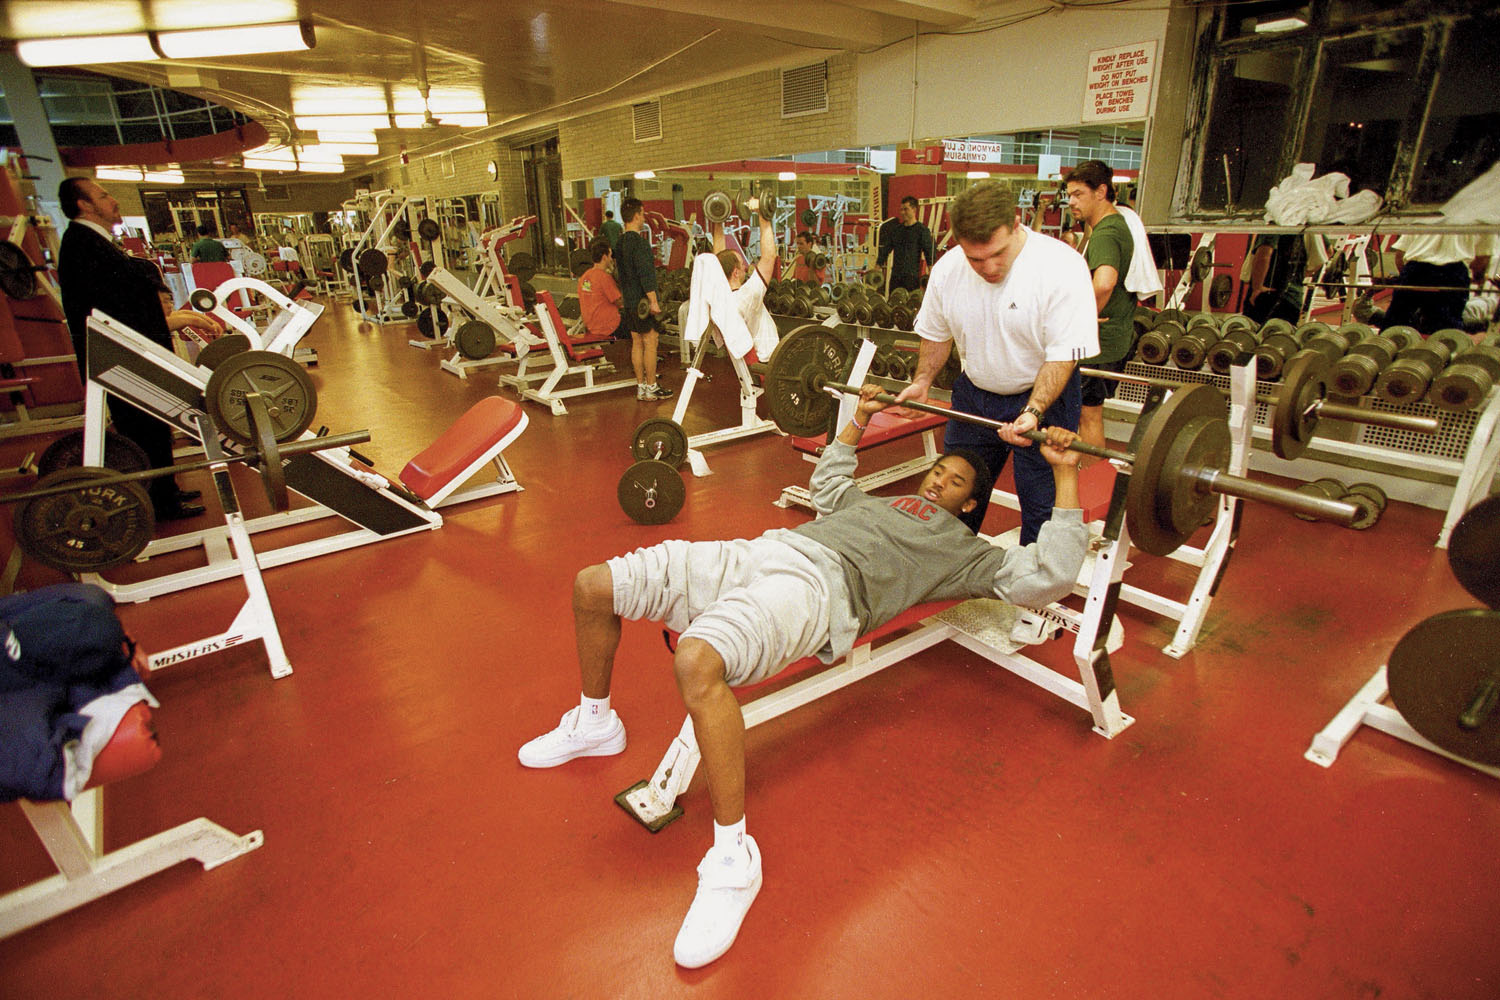 Los Angeles Lakers Kobe Bryant in action, lifting weights with his trainer at the New York Athletic Club in 2002.